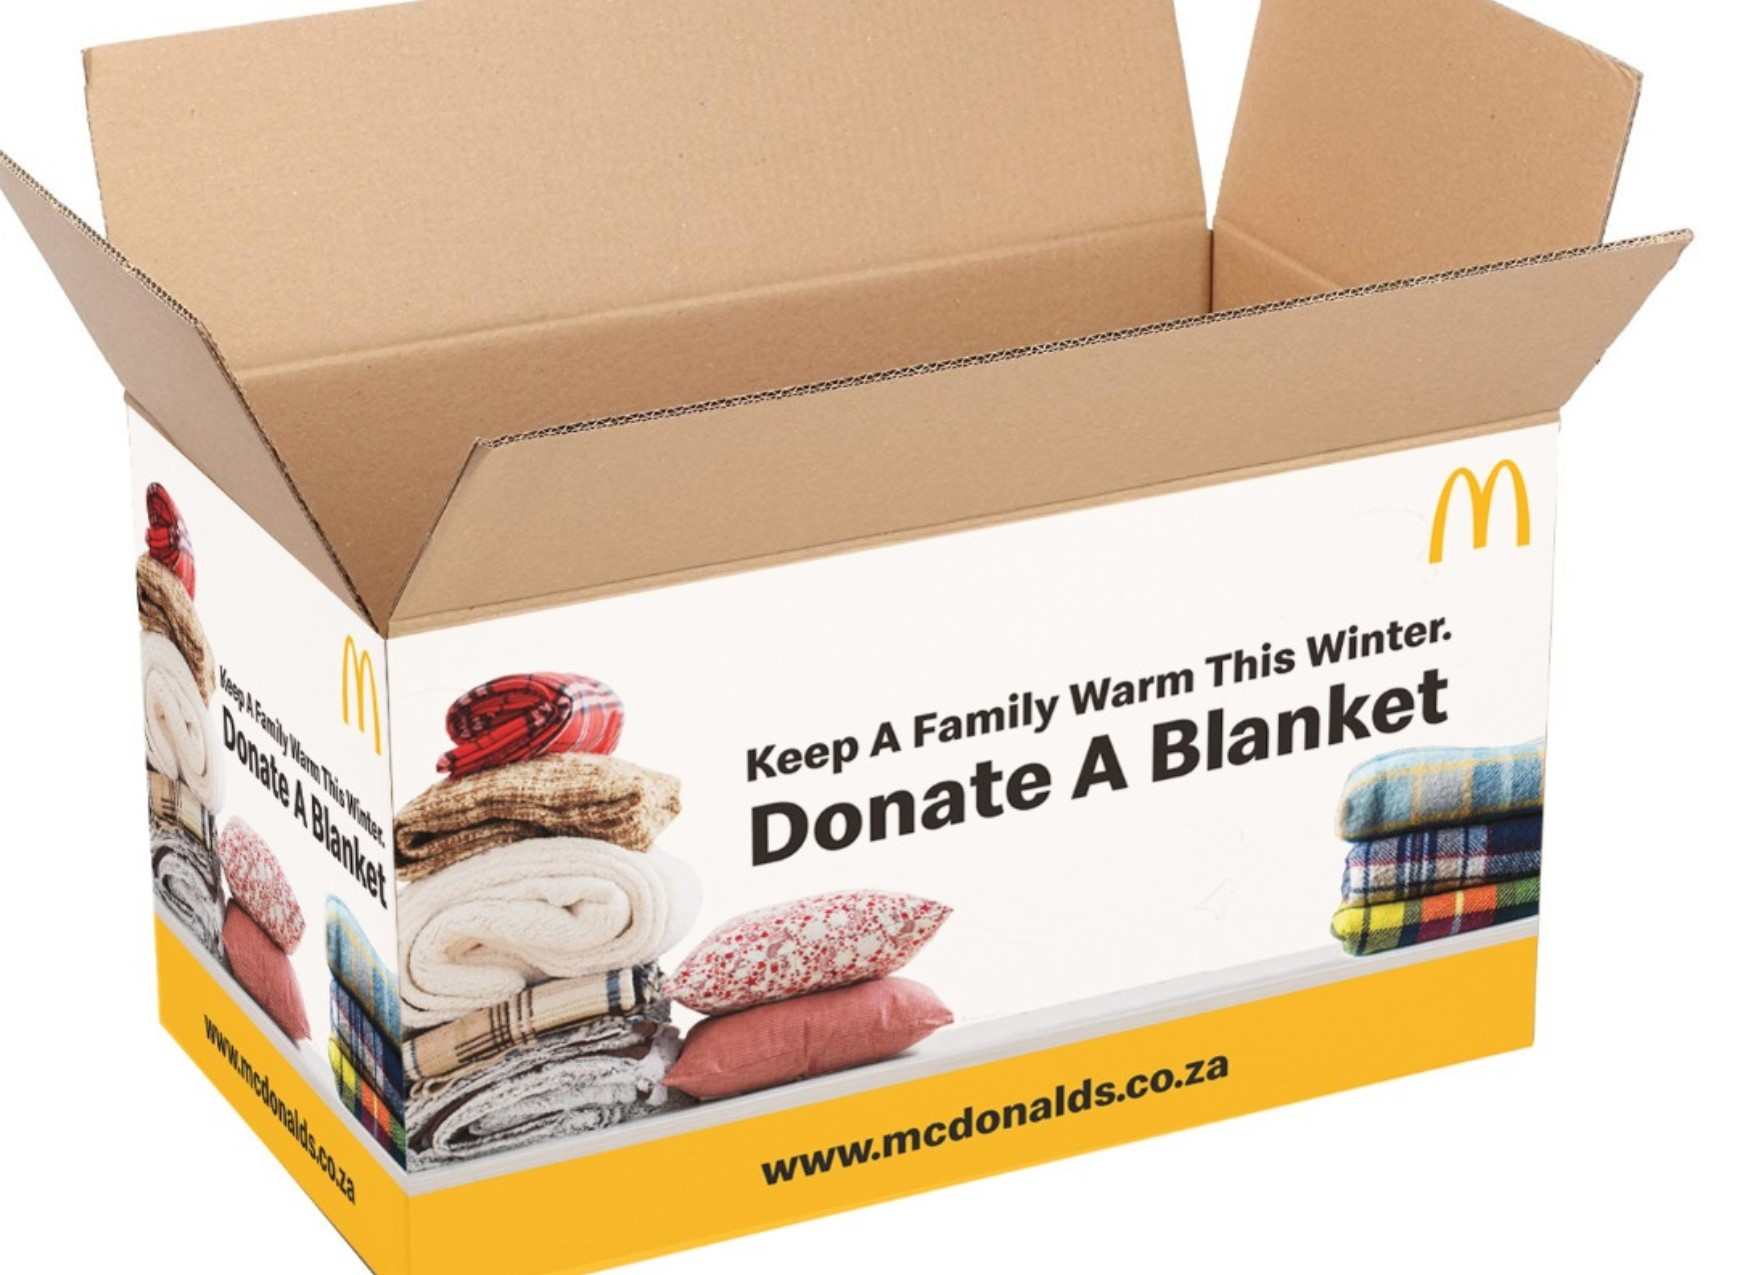 Spread the warmth, Spread the lovin │McDonald's Blanket Drive